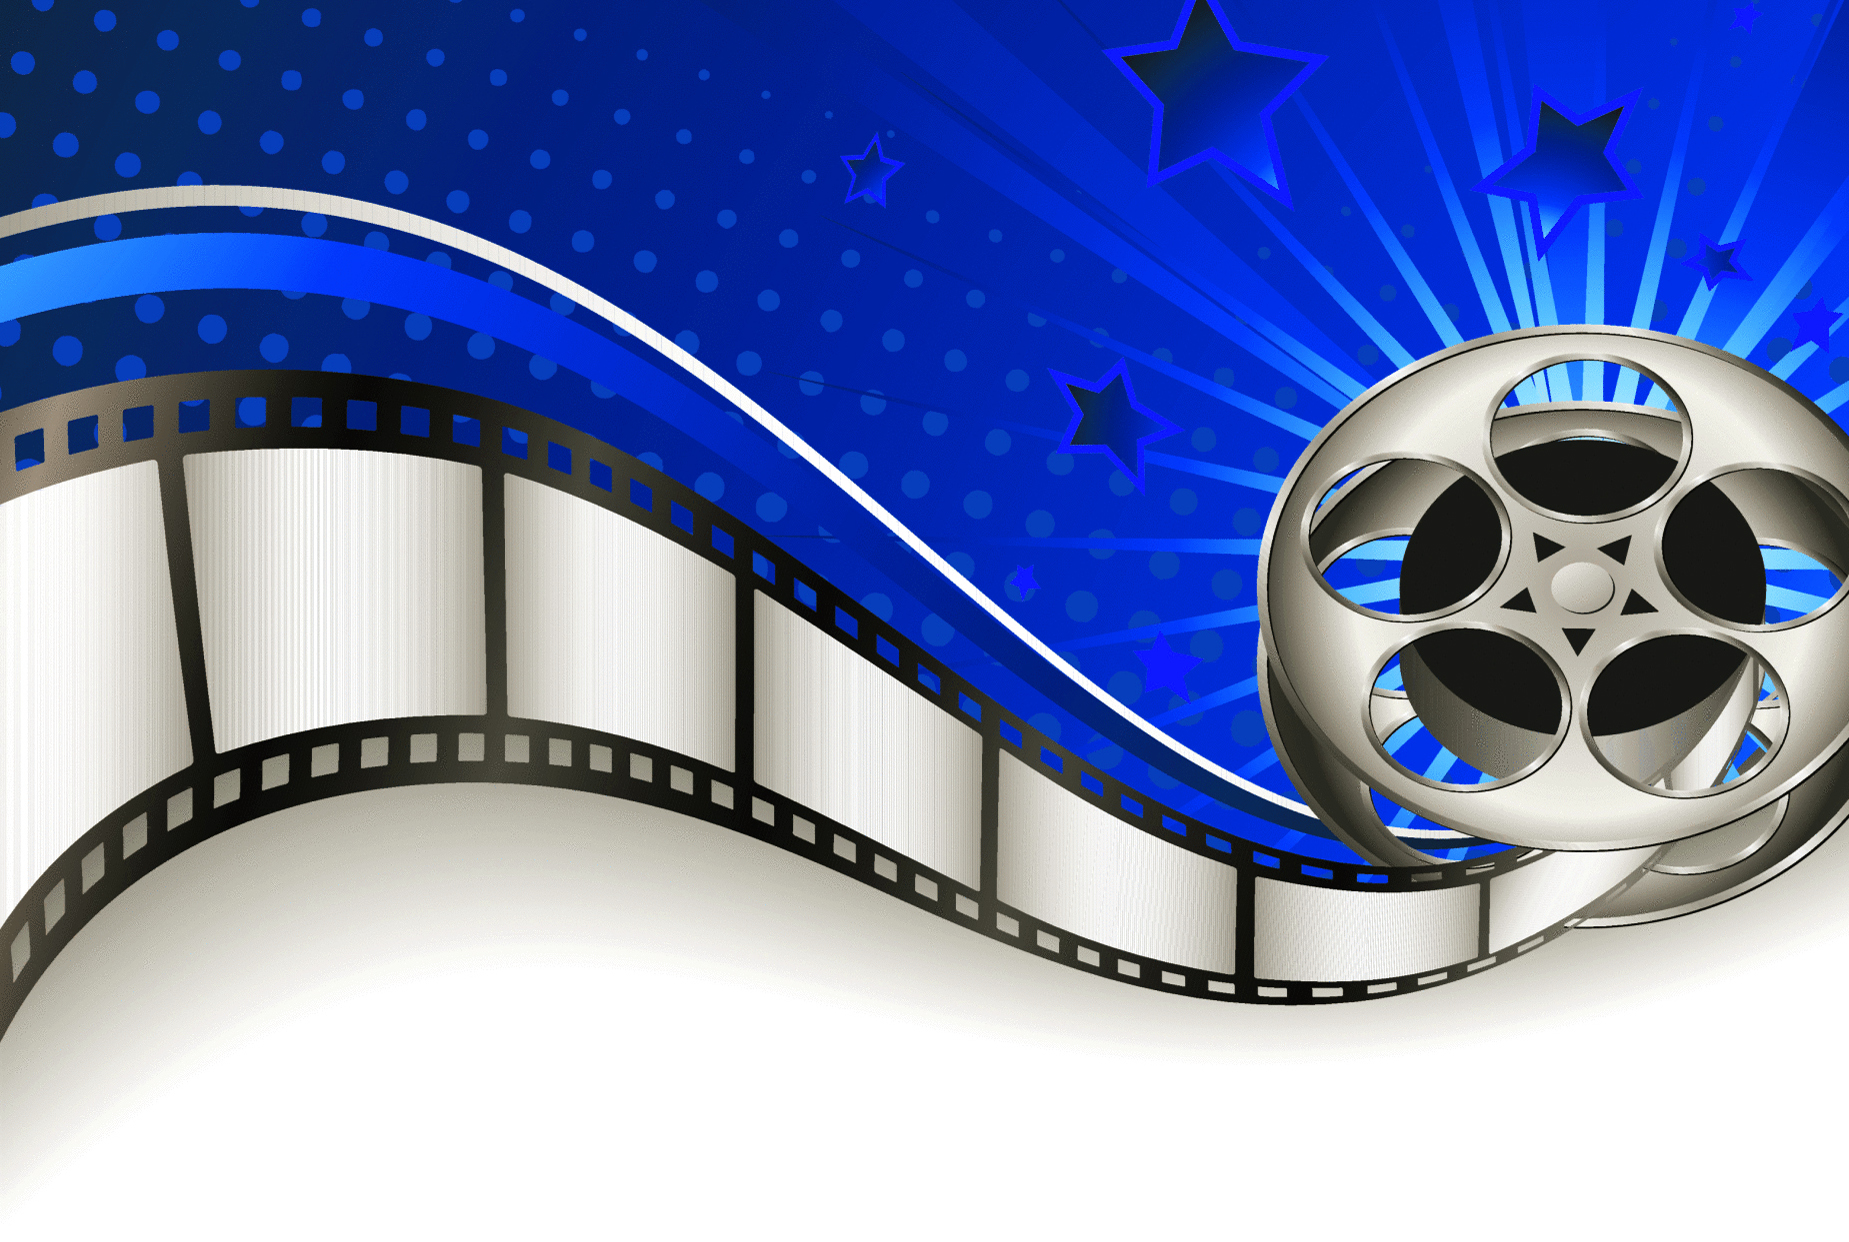 Movie Theatre Wallpaper - WallpaperSafari